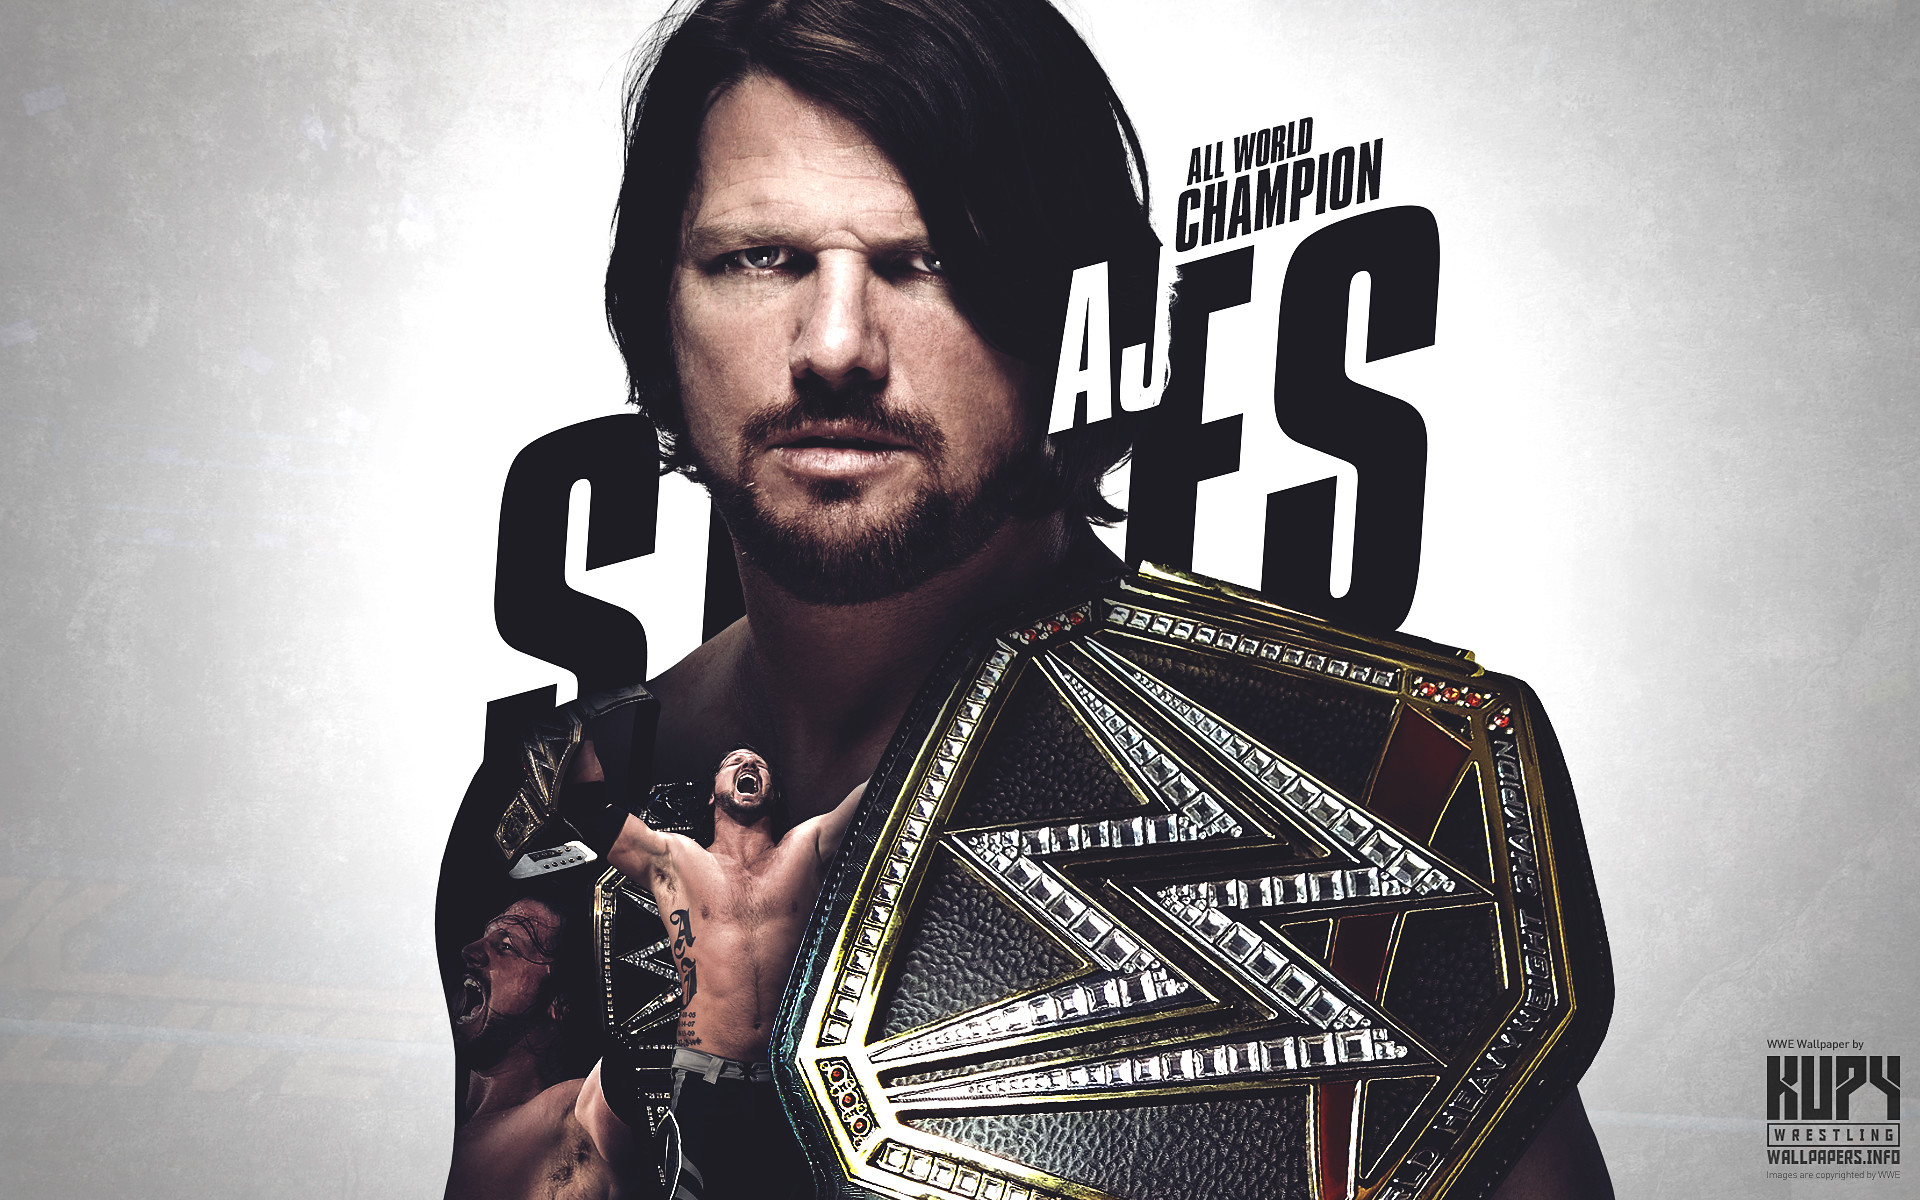 Aj Styles Wwe Wallpapers 80 Images HD Wallpapers Download Free Images Wallpaper [1000image.com]